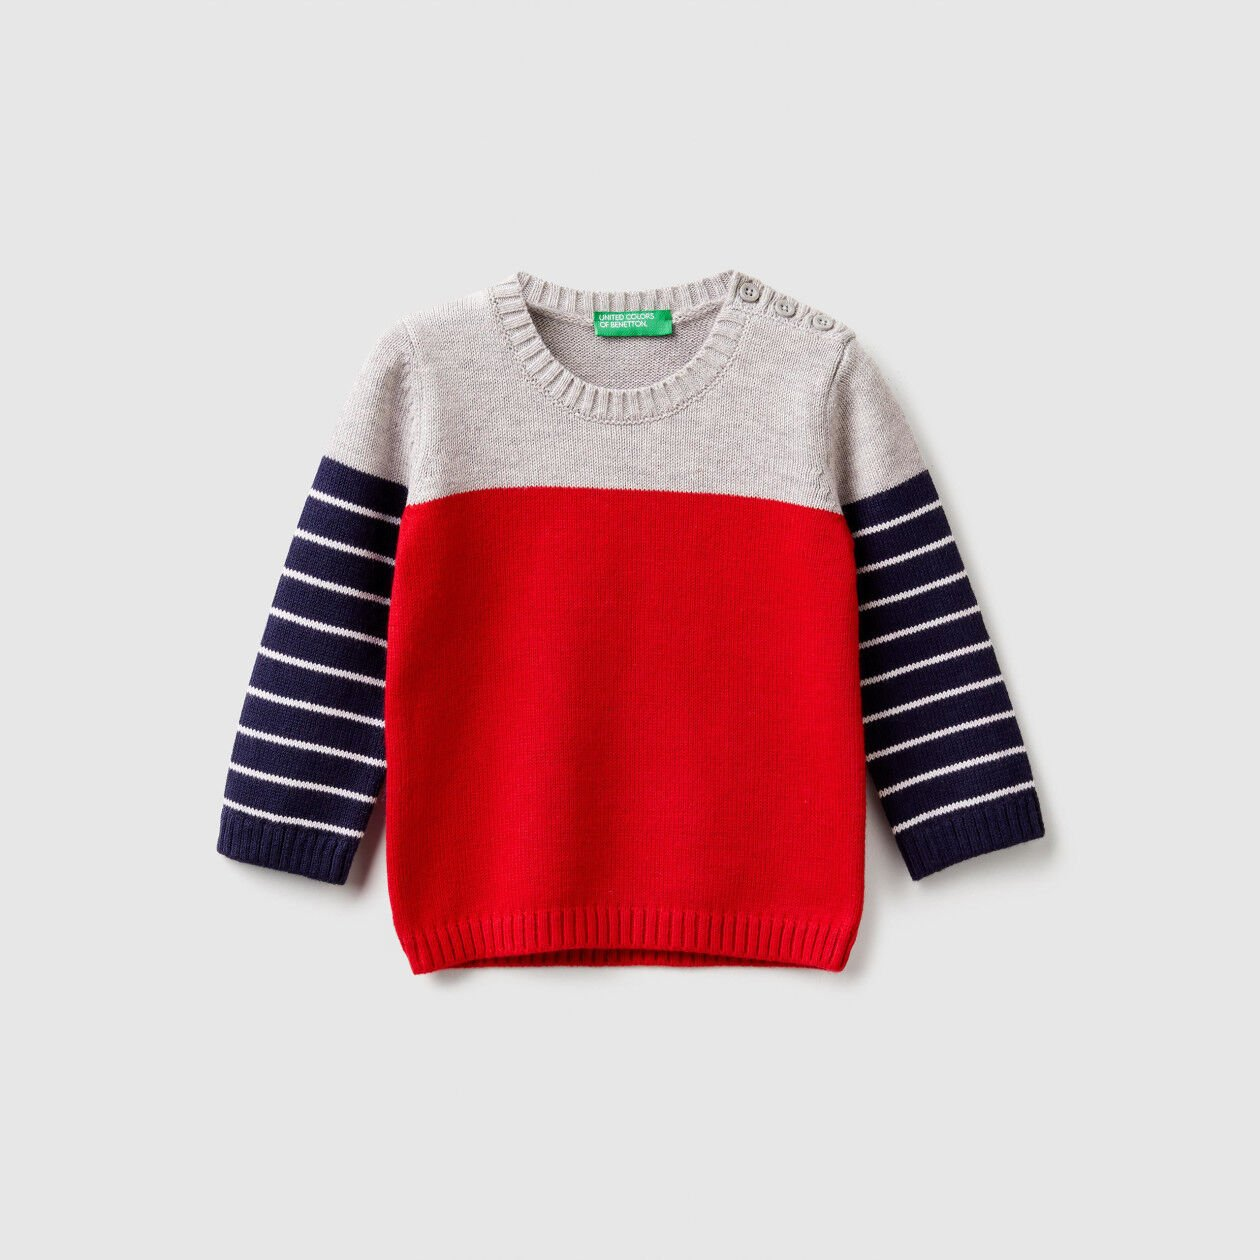 Sweater with multicolor stripes